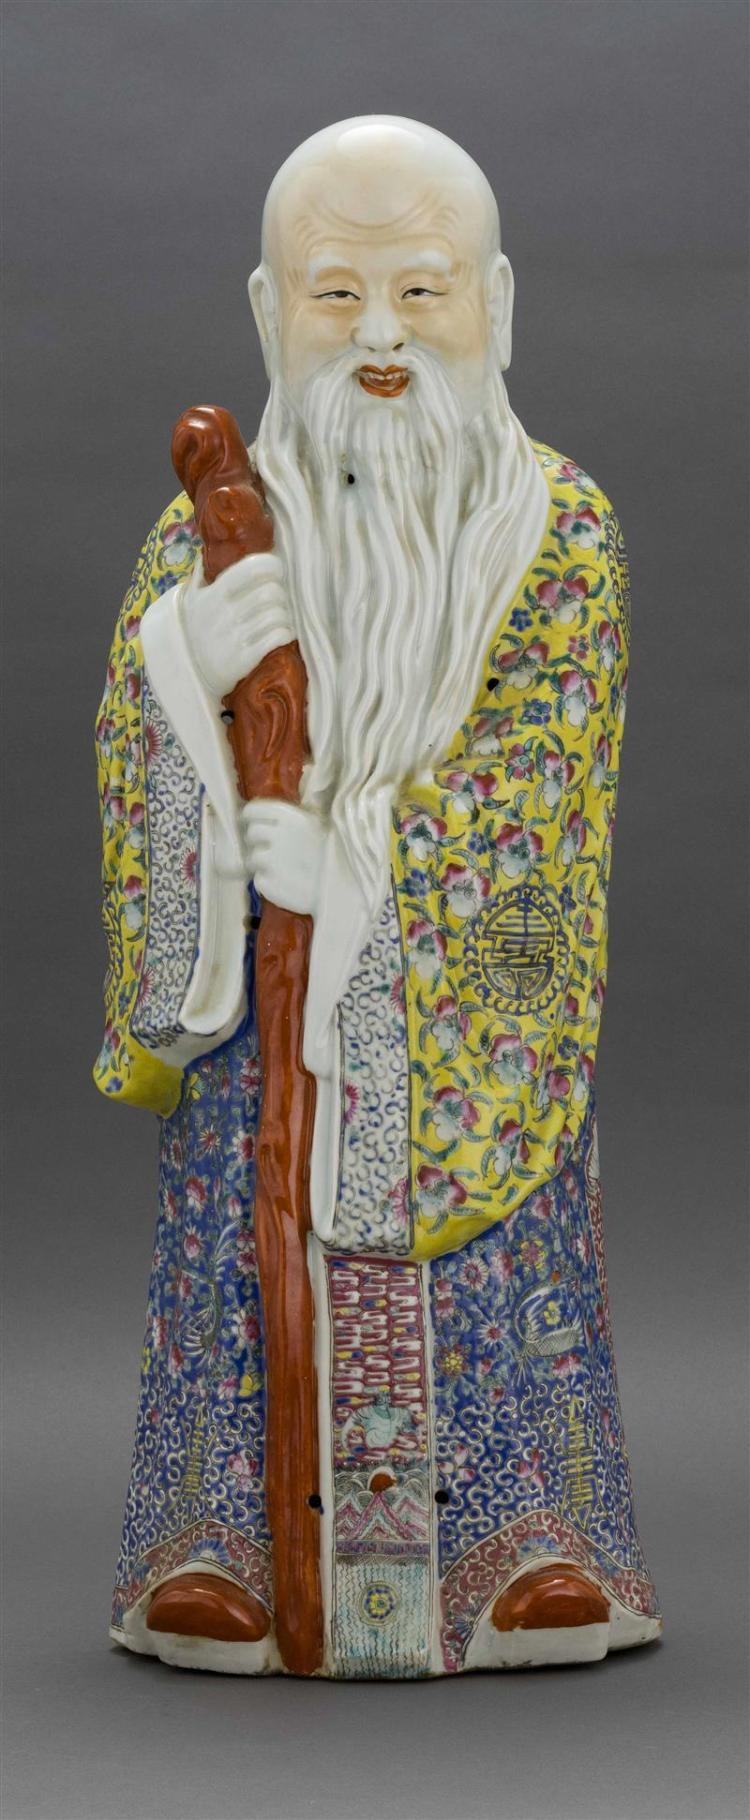 POLYCHROME PORCELAIN FIGURE OF SHOULAO In standing position holding a tree branch staff and dressed in a yellow robe with a blue ski...